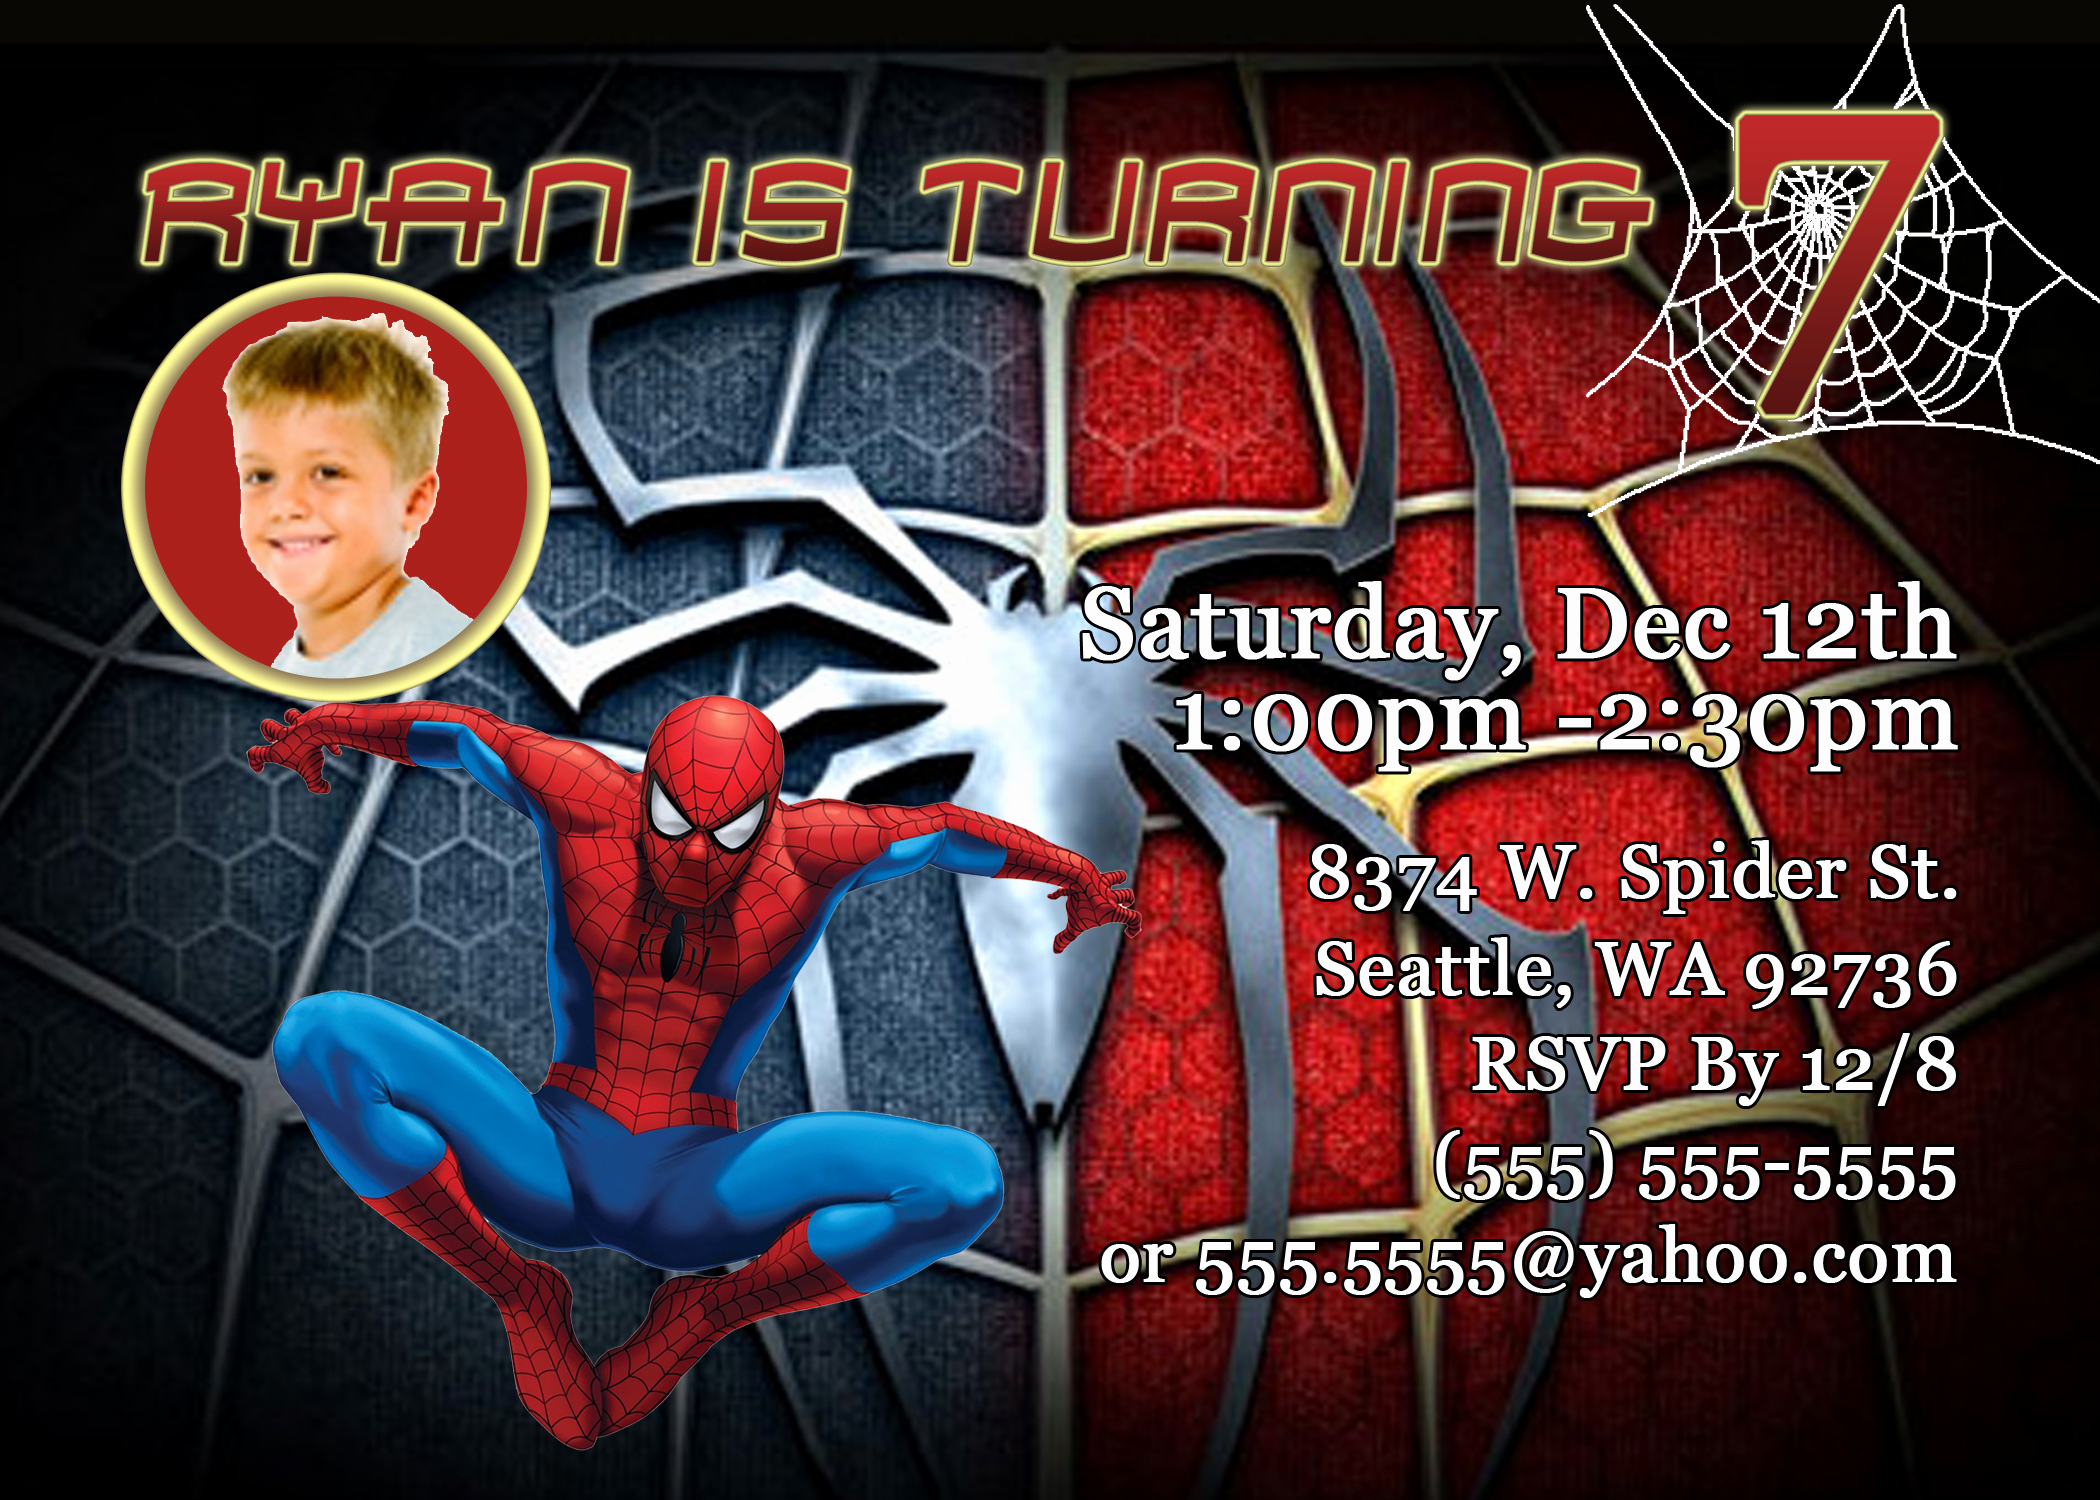 Spiderman Birthday Invitation Maker Awesome Kids Birthday Party Invitations Wording